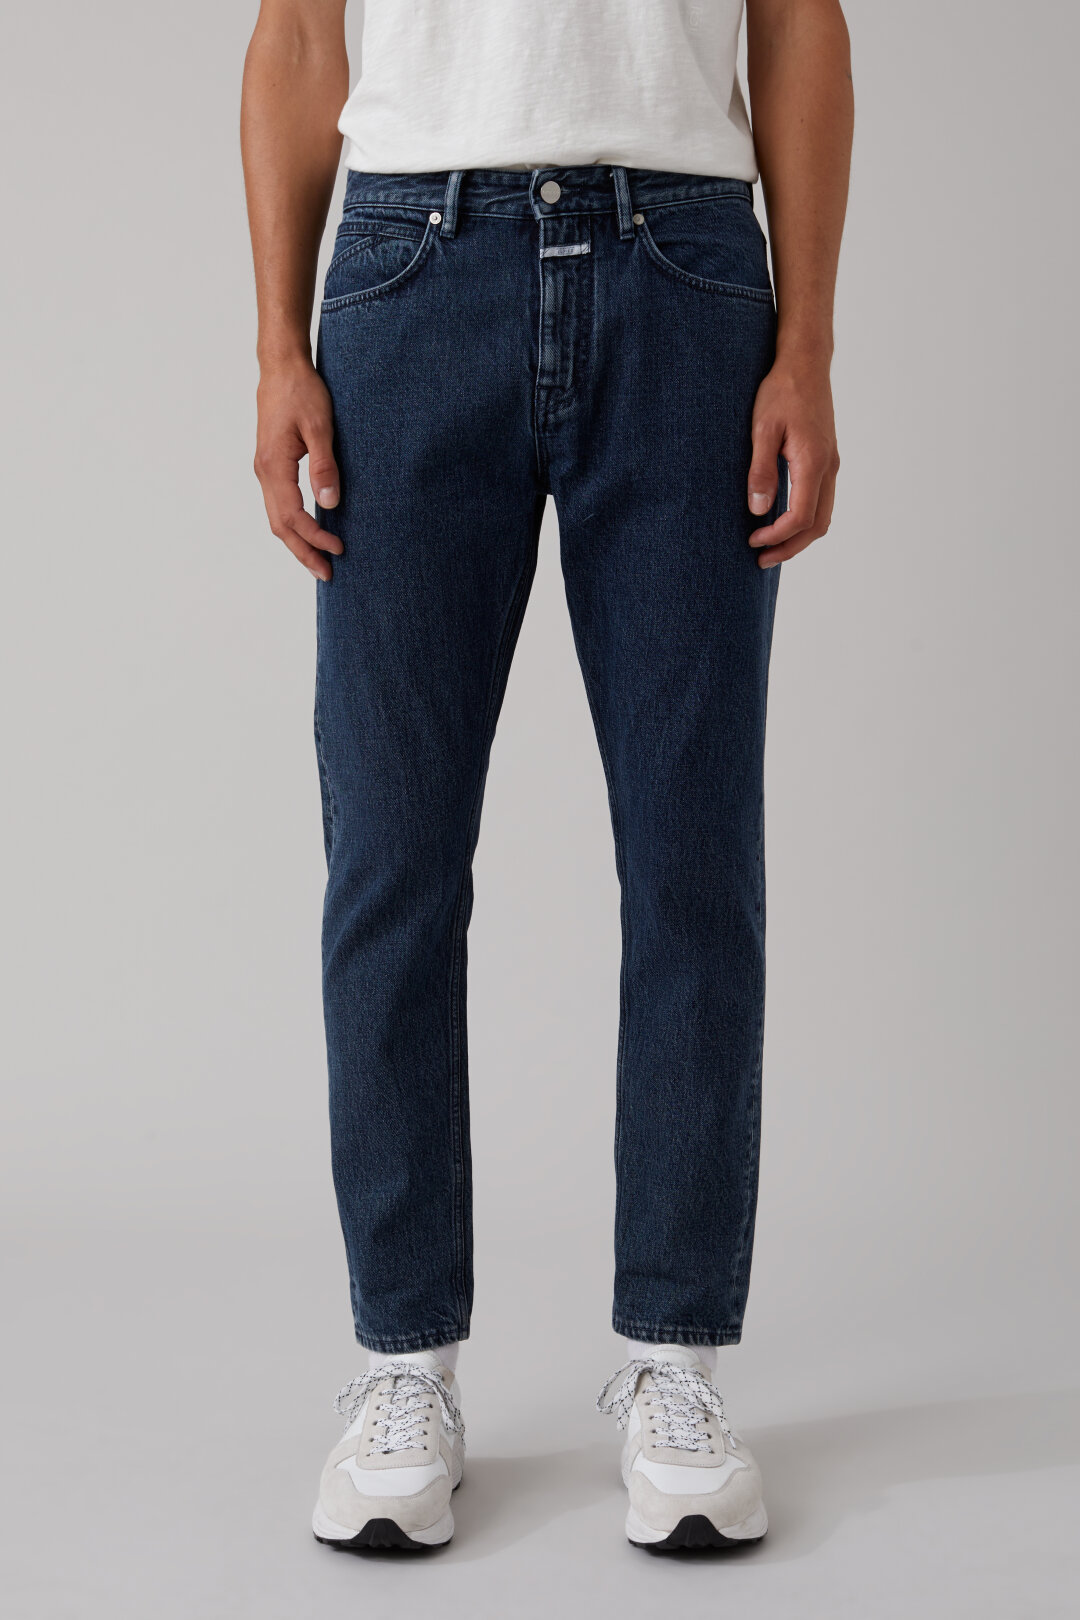 Cooper Tapered Relaxed Fit Blue Denim